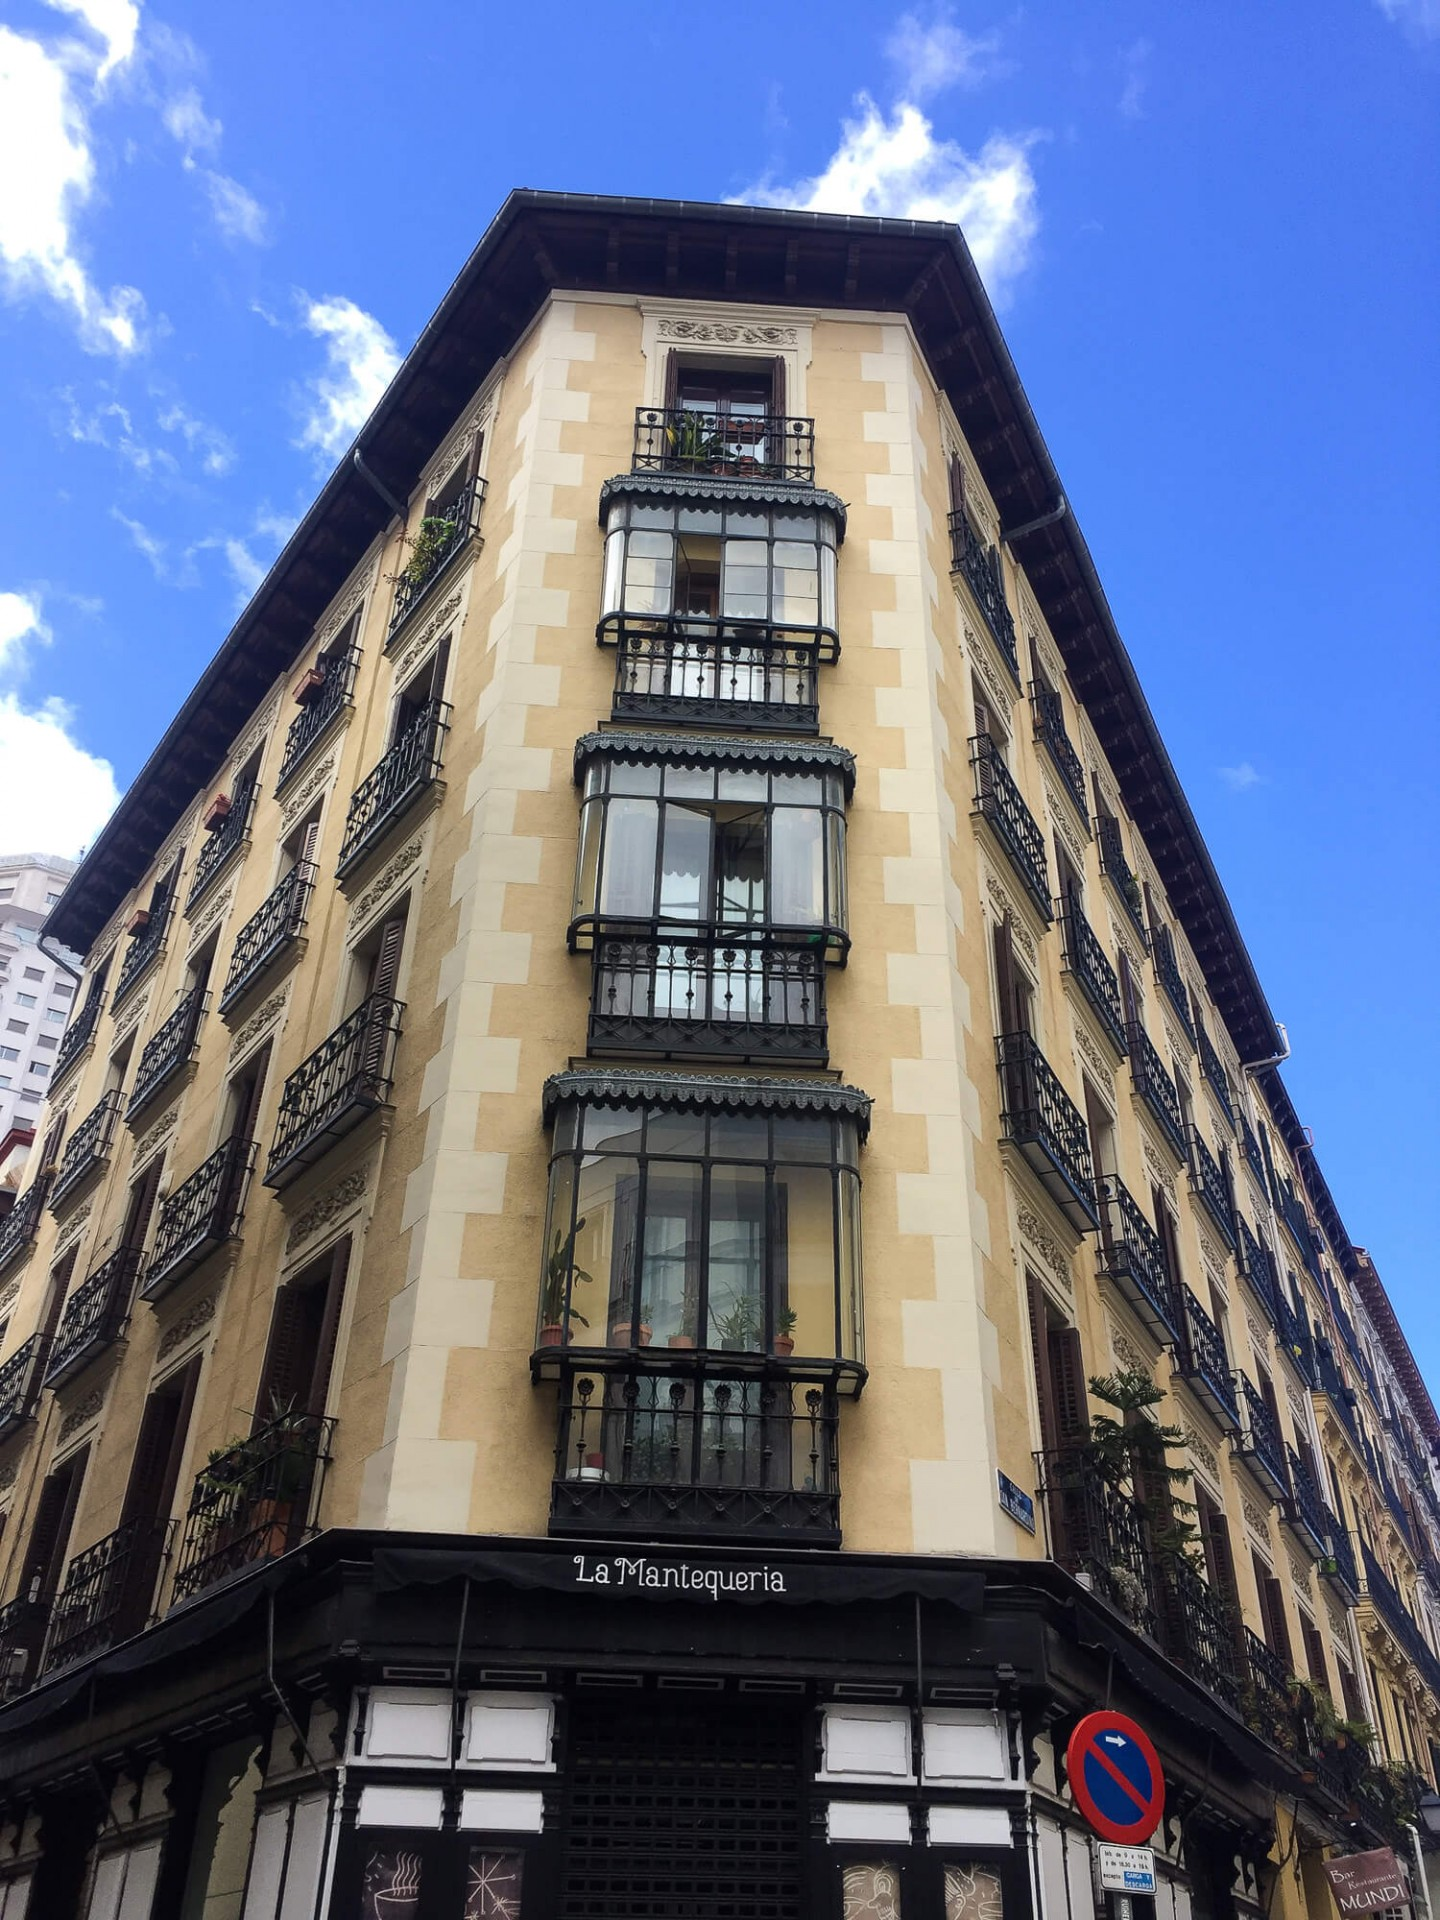 A 3 day guide to Madrid, Spain. Including the top things to do and best things to see in Madrid. And great places to eat! A local guide.